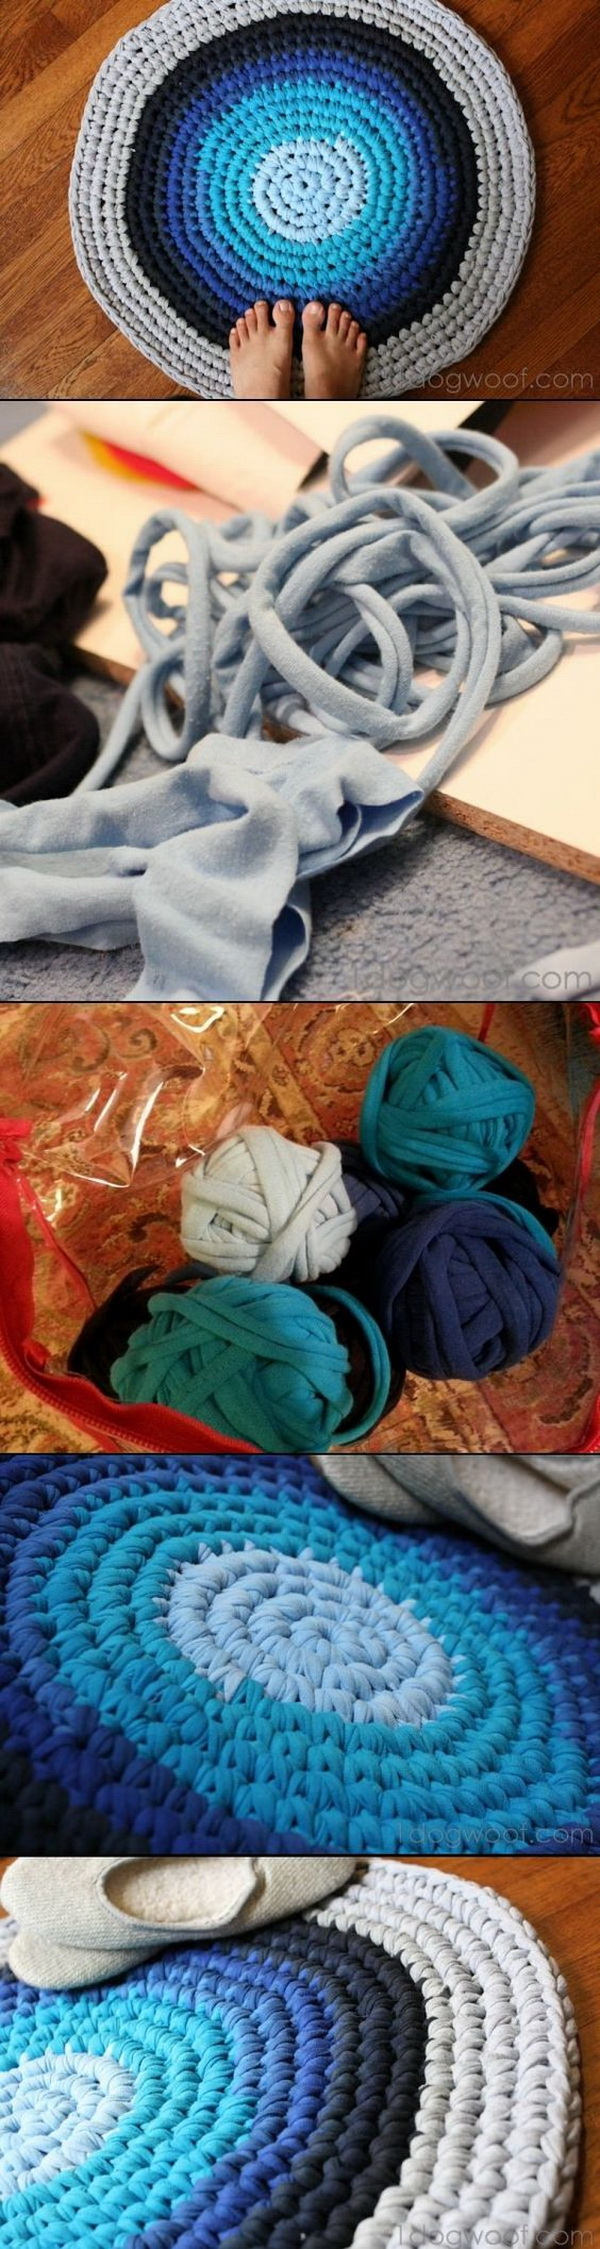 Easy crochet projects for beginners for creative juice for How to make rugs out of old t shirts